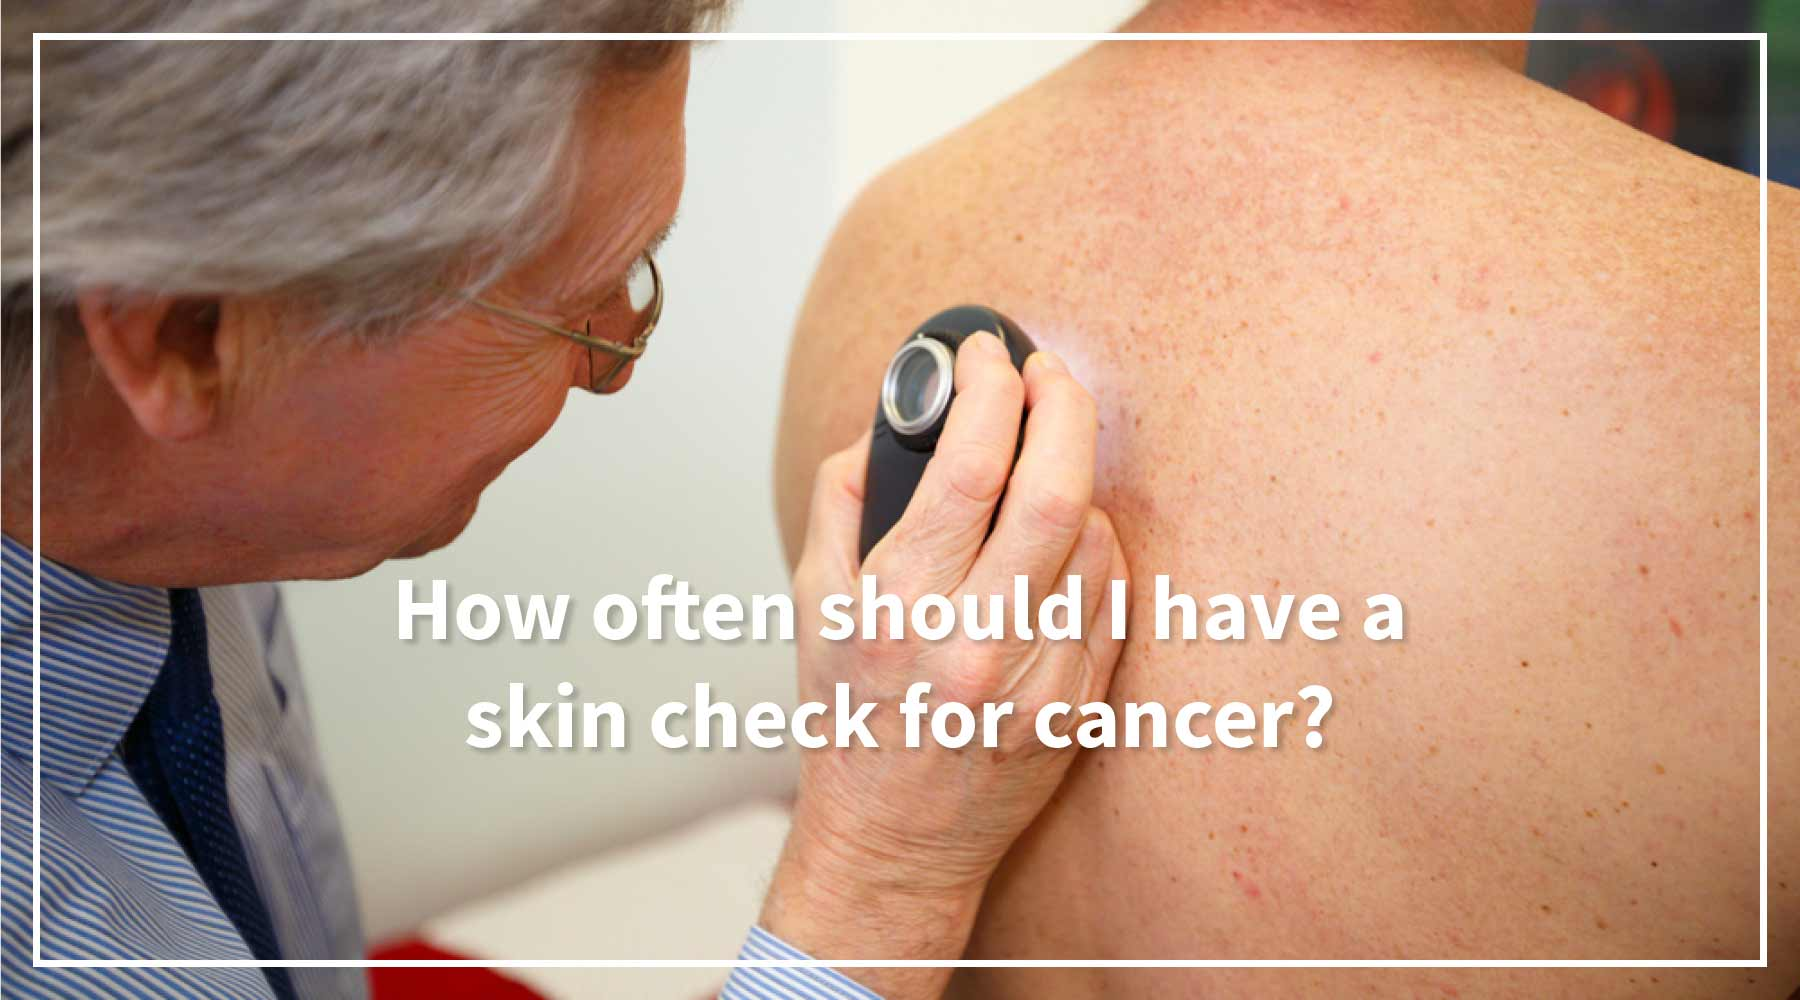 How often should I have a skin check for cancer?